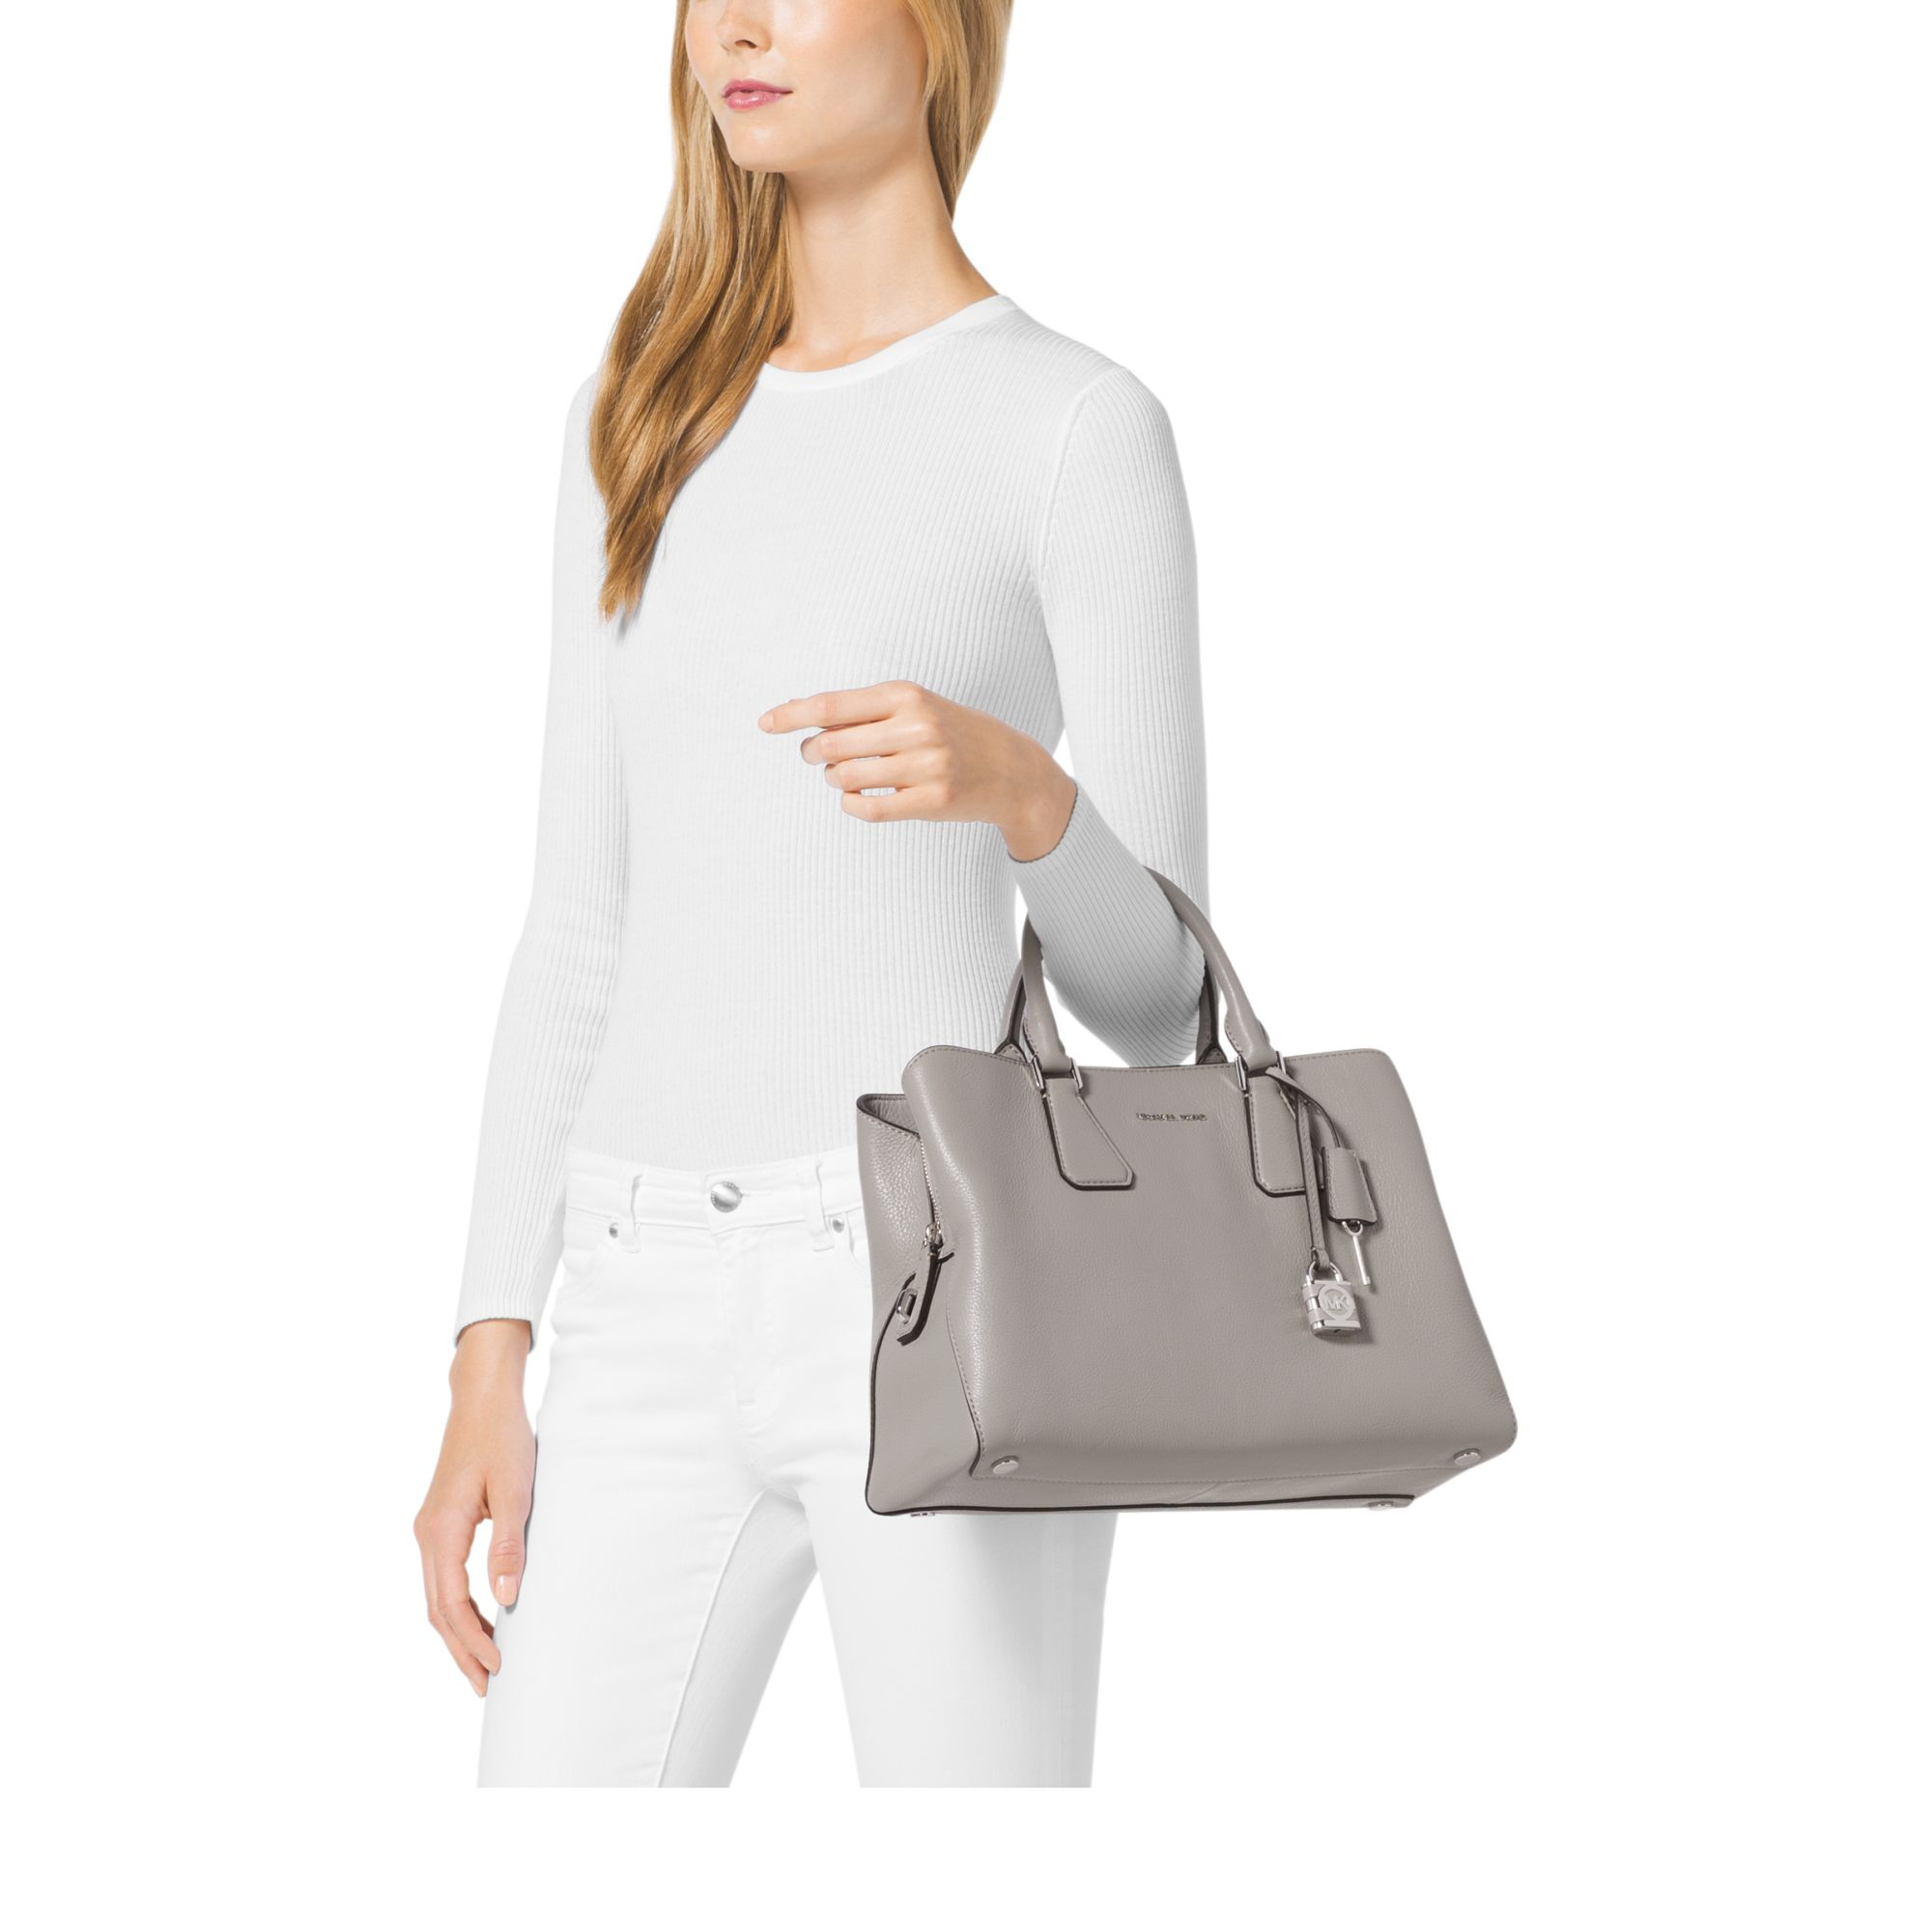 58d13b735cec Michael Kors Camille Large Leather Satchel in Gray - Lyst